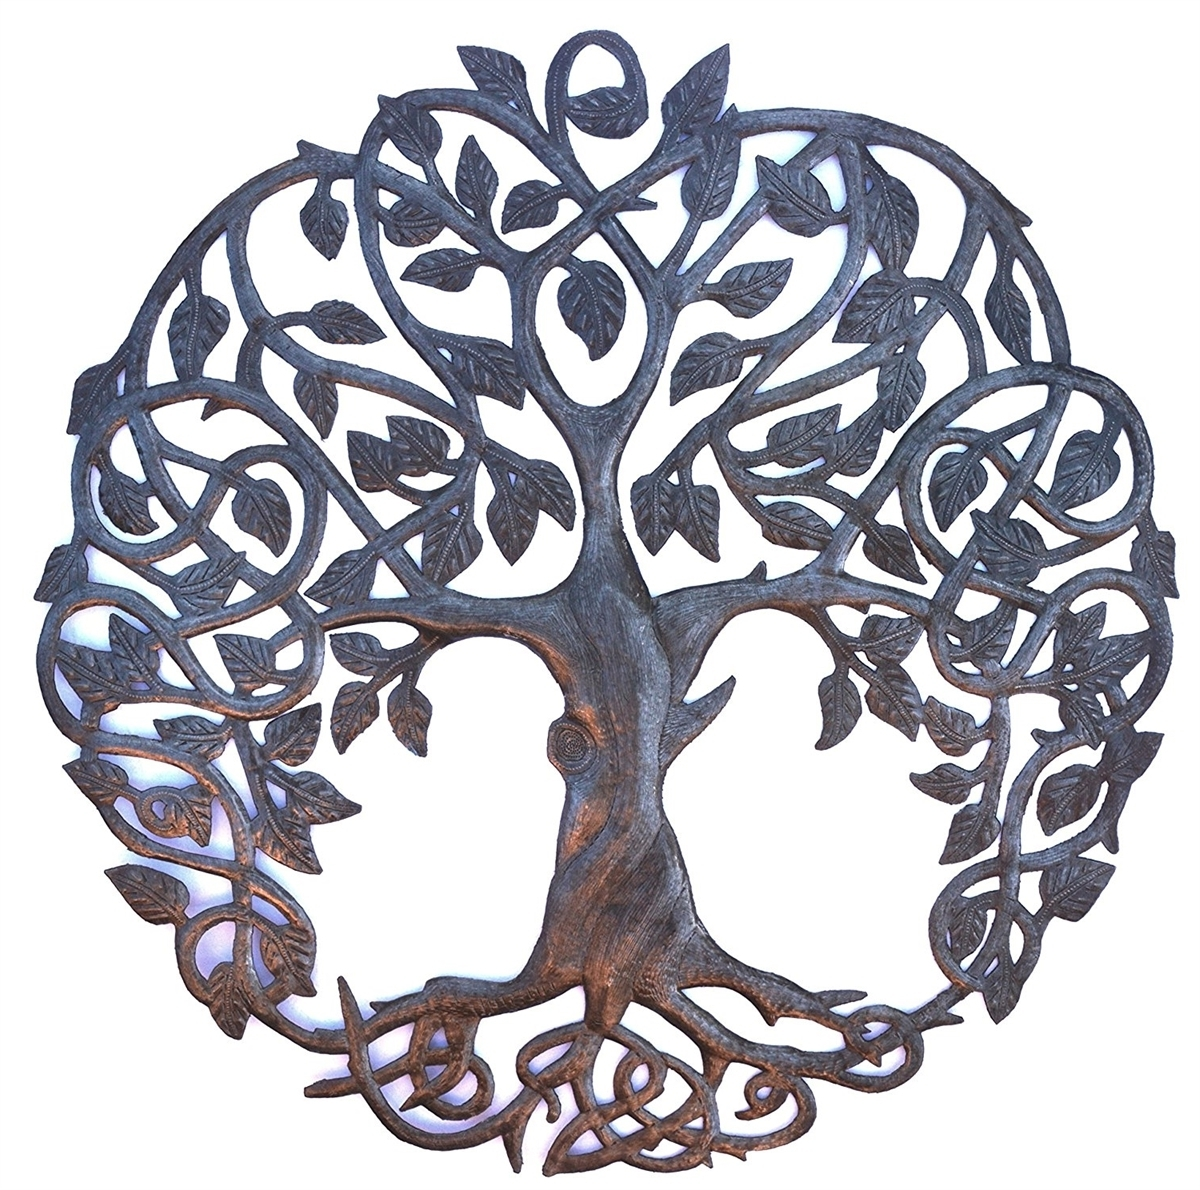 New Design Celtic Inspired Tree Of Life, Metal Wall Art, Fair Trade For Recent Tree Of Life Wall Art (View 14 of 15)